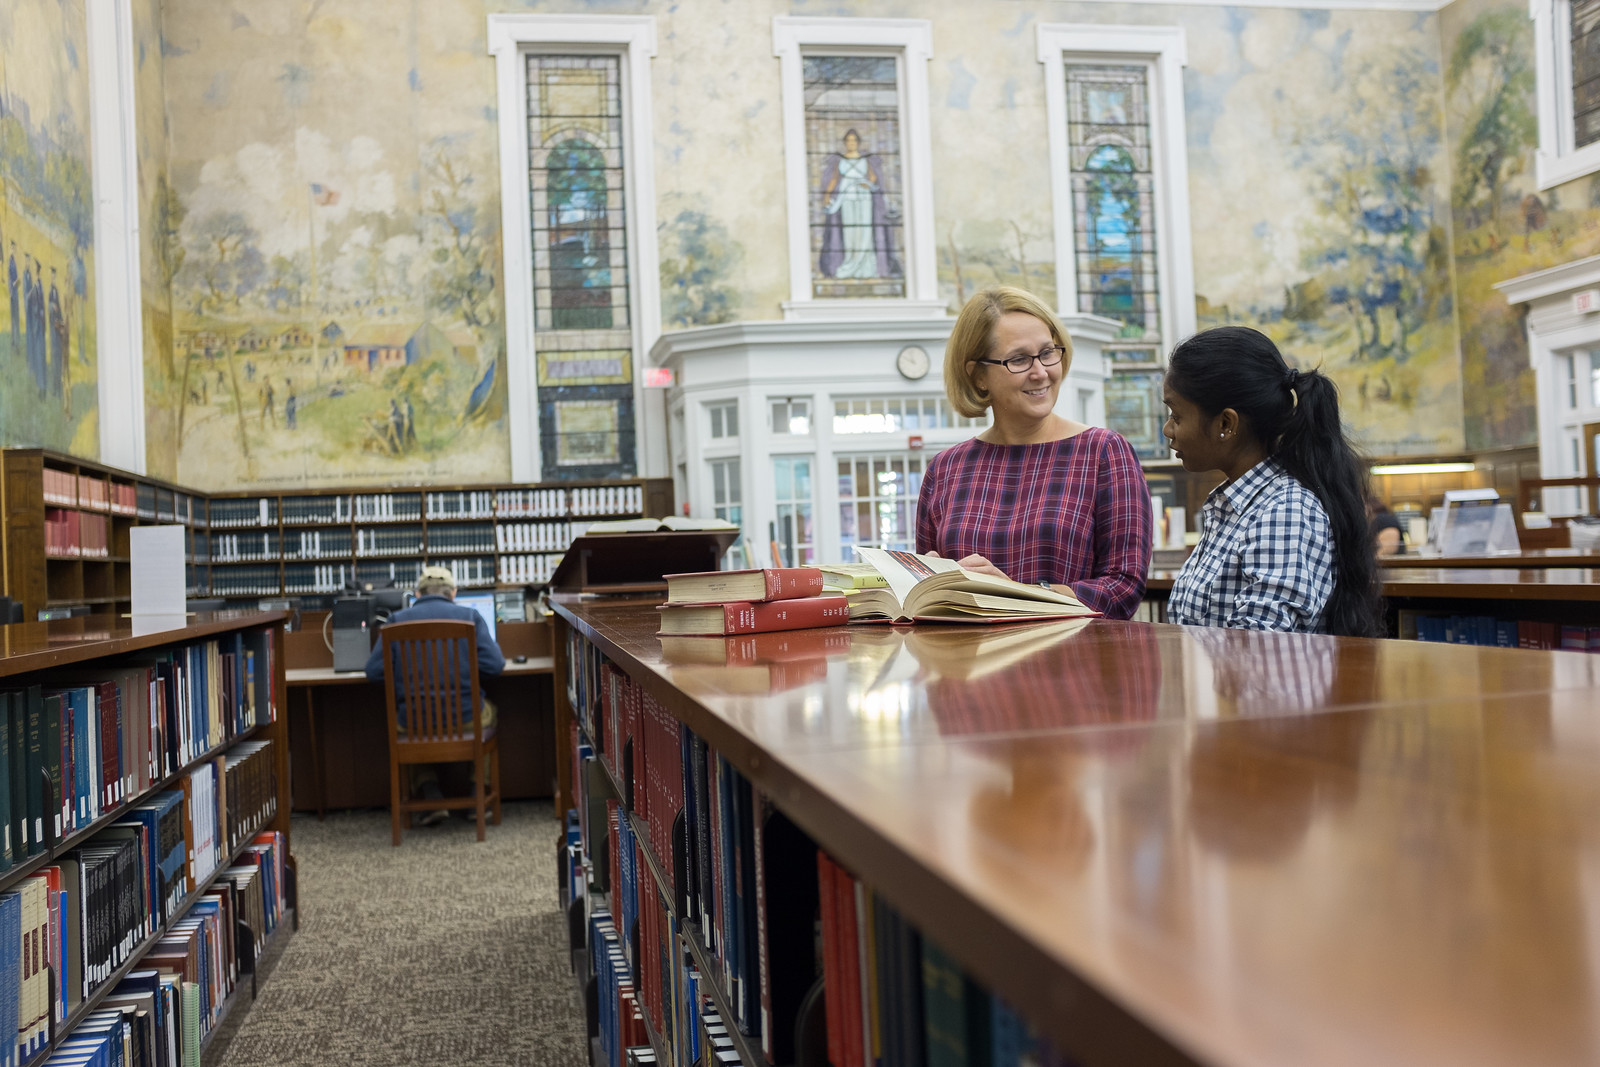 Librarian and Student at Dewey